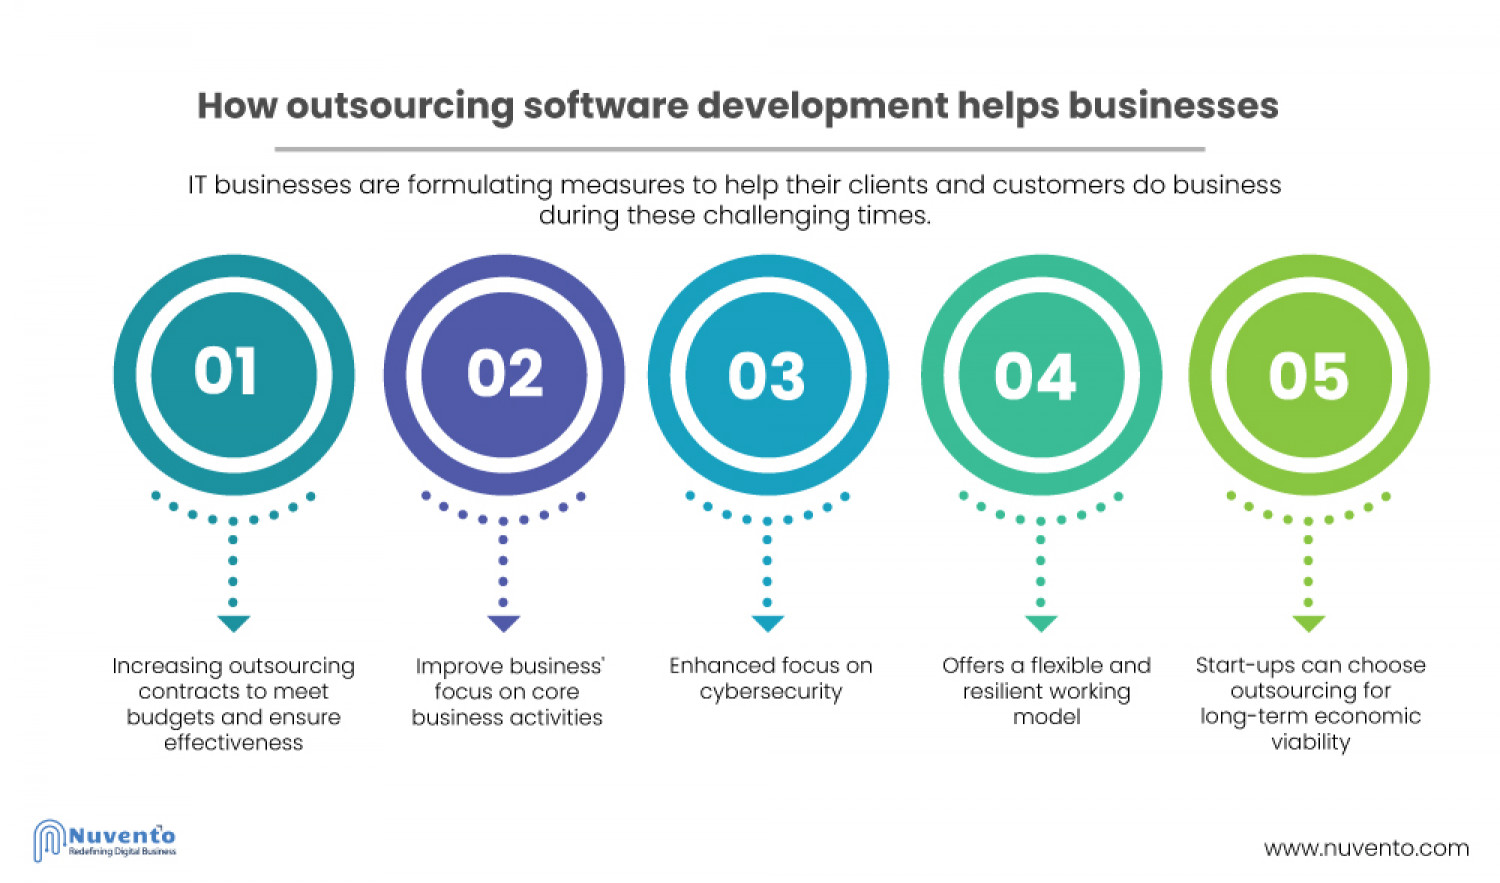 COVID-19 impact on software development Infographic